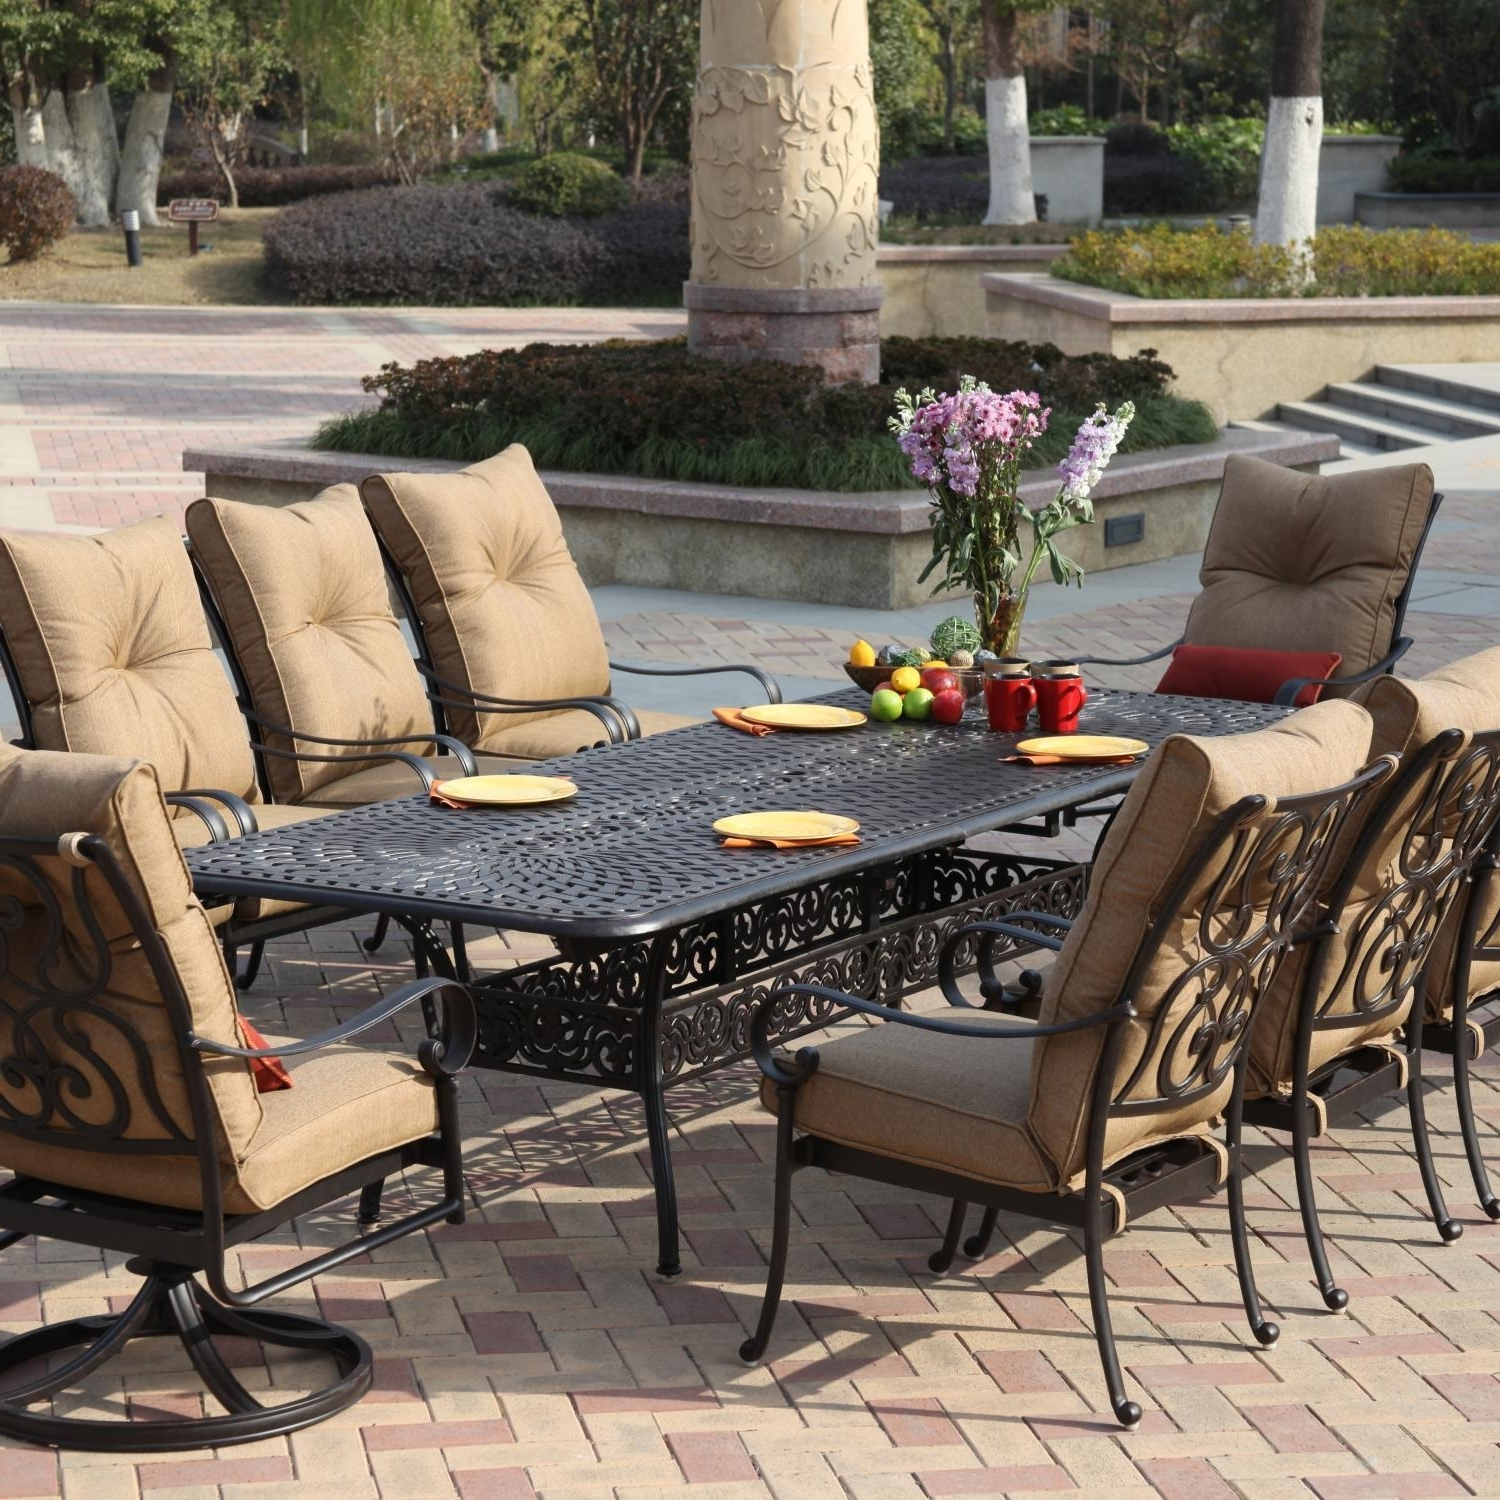 8 Seat Outdoor Dining Tables With Widely Used Santa Anita 11 Piece Cast Aluminum Patio Dining Set W/ 92 X 42 Inch (View 14 of 25)